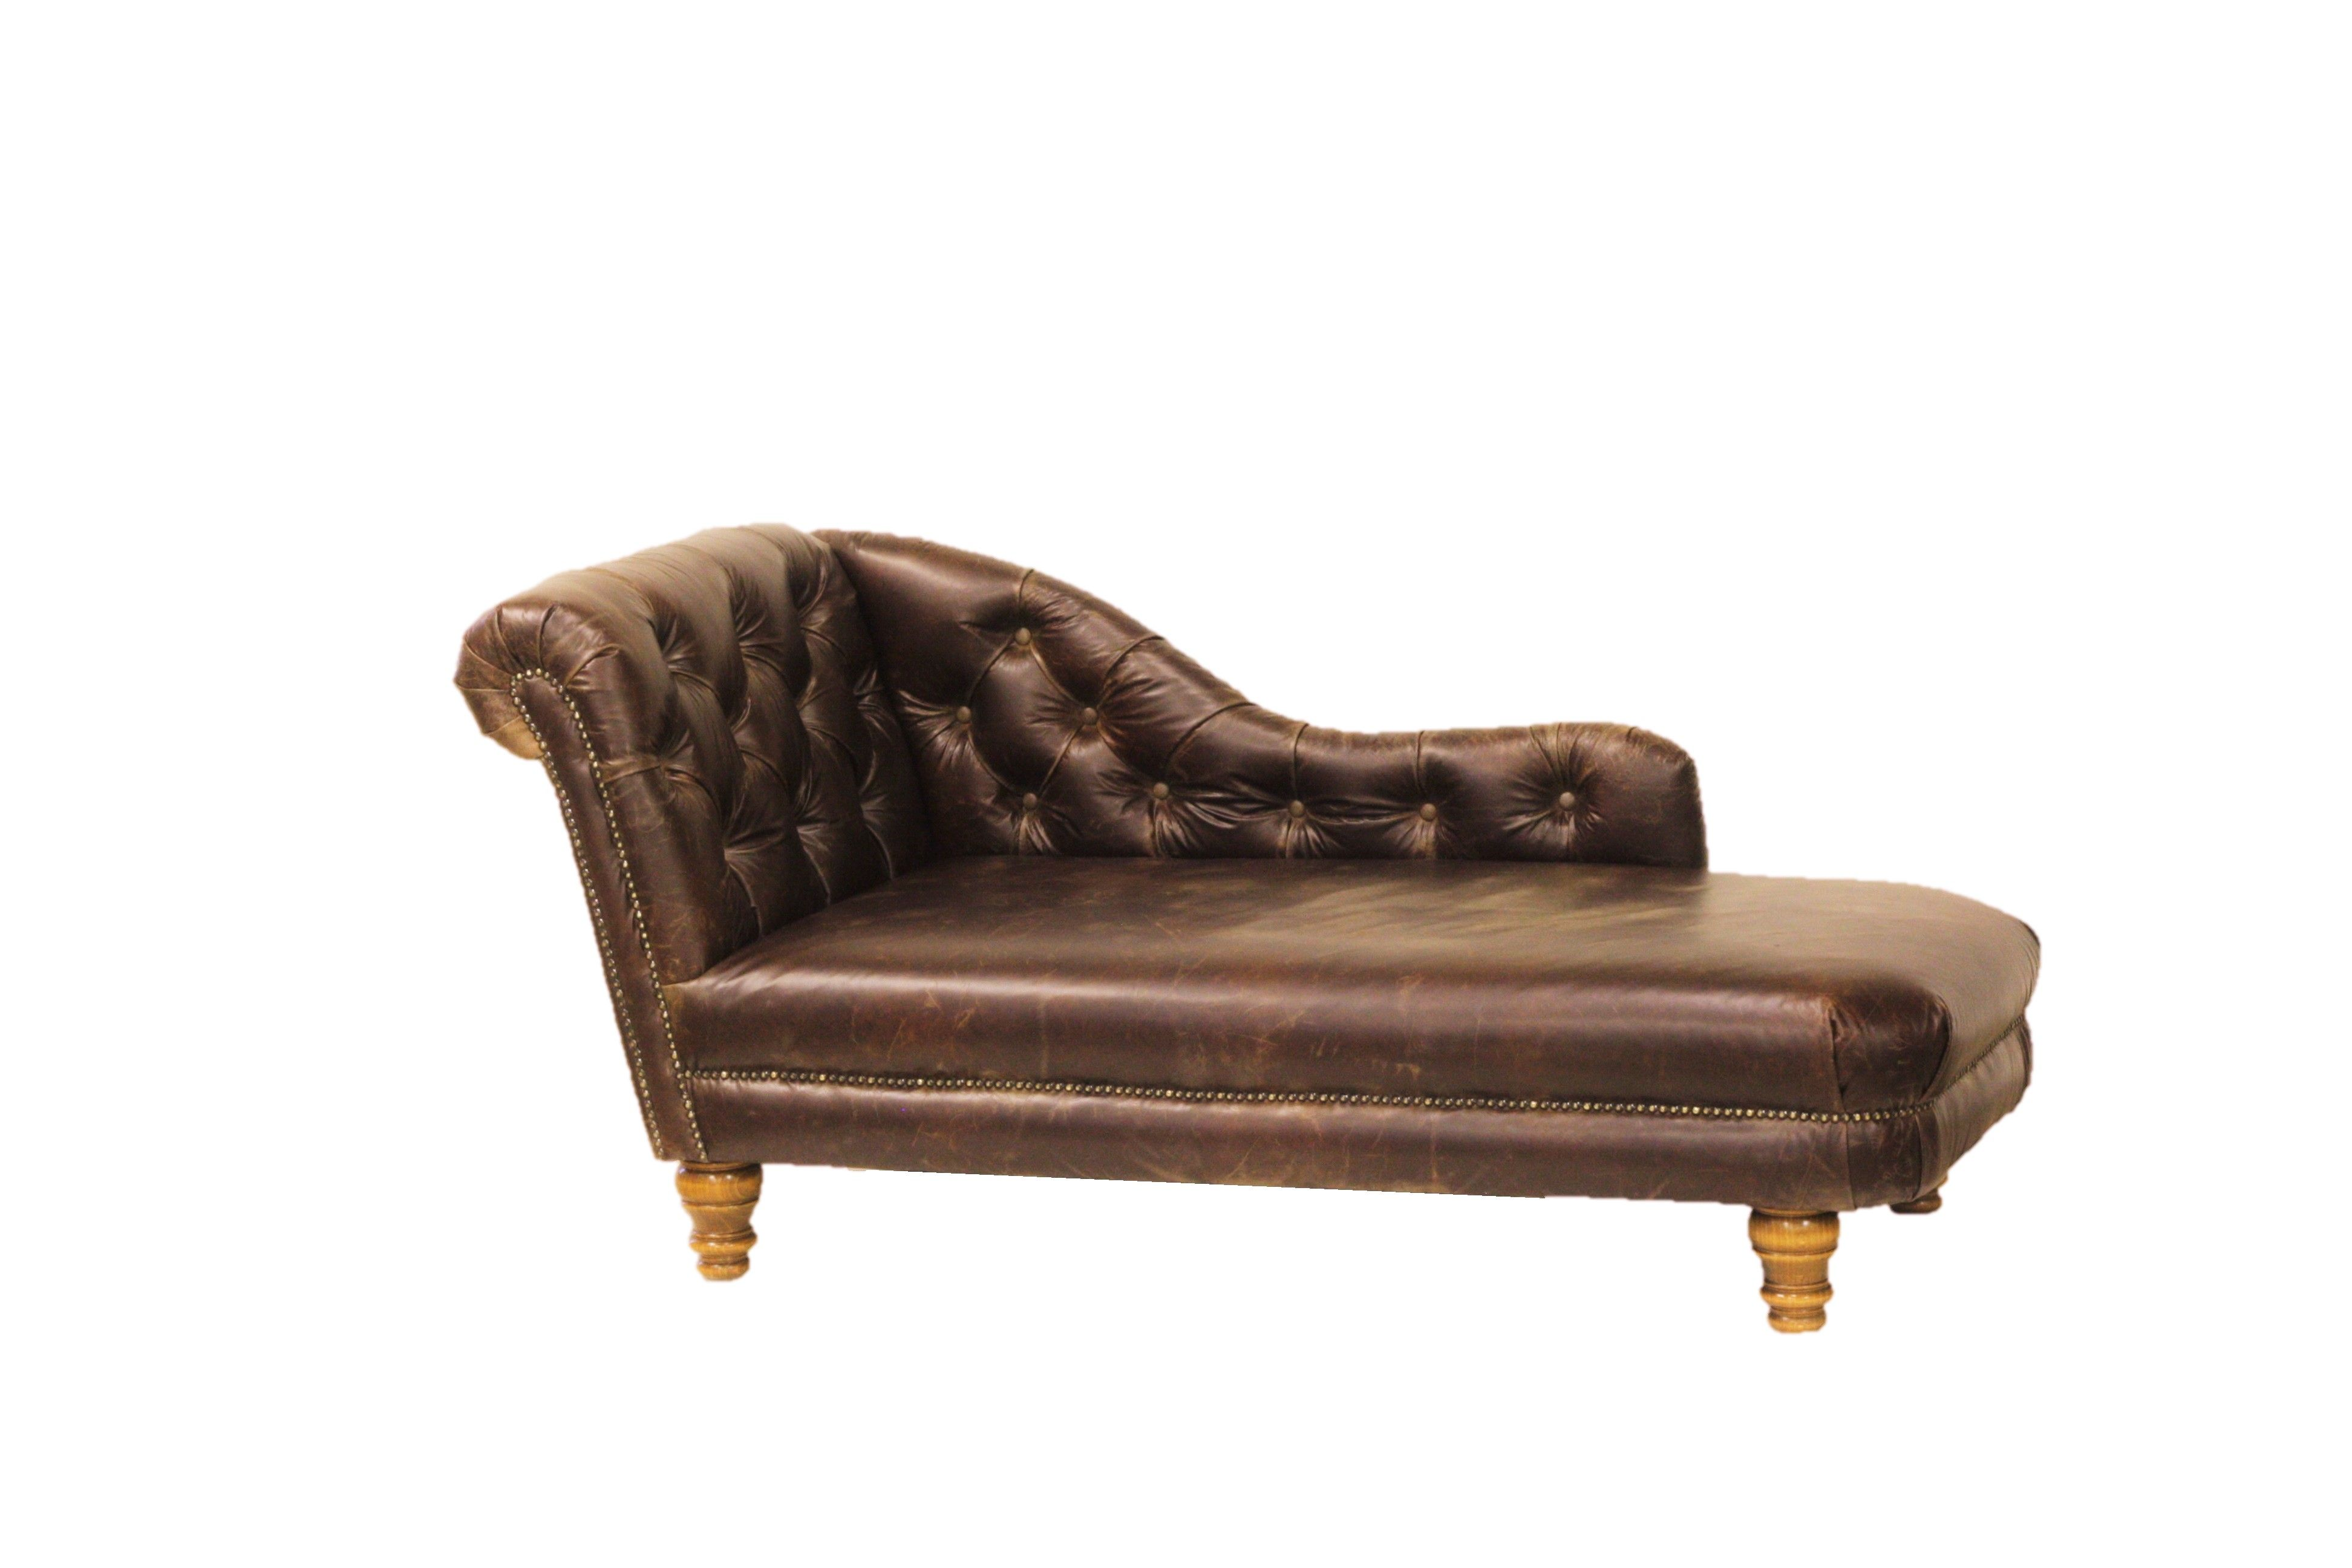 Vintage Leather Chaise From Www Thechaiselongueco Co Uk Chaiselongue Interiordesign Madeinengland Muebles